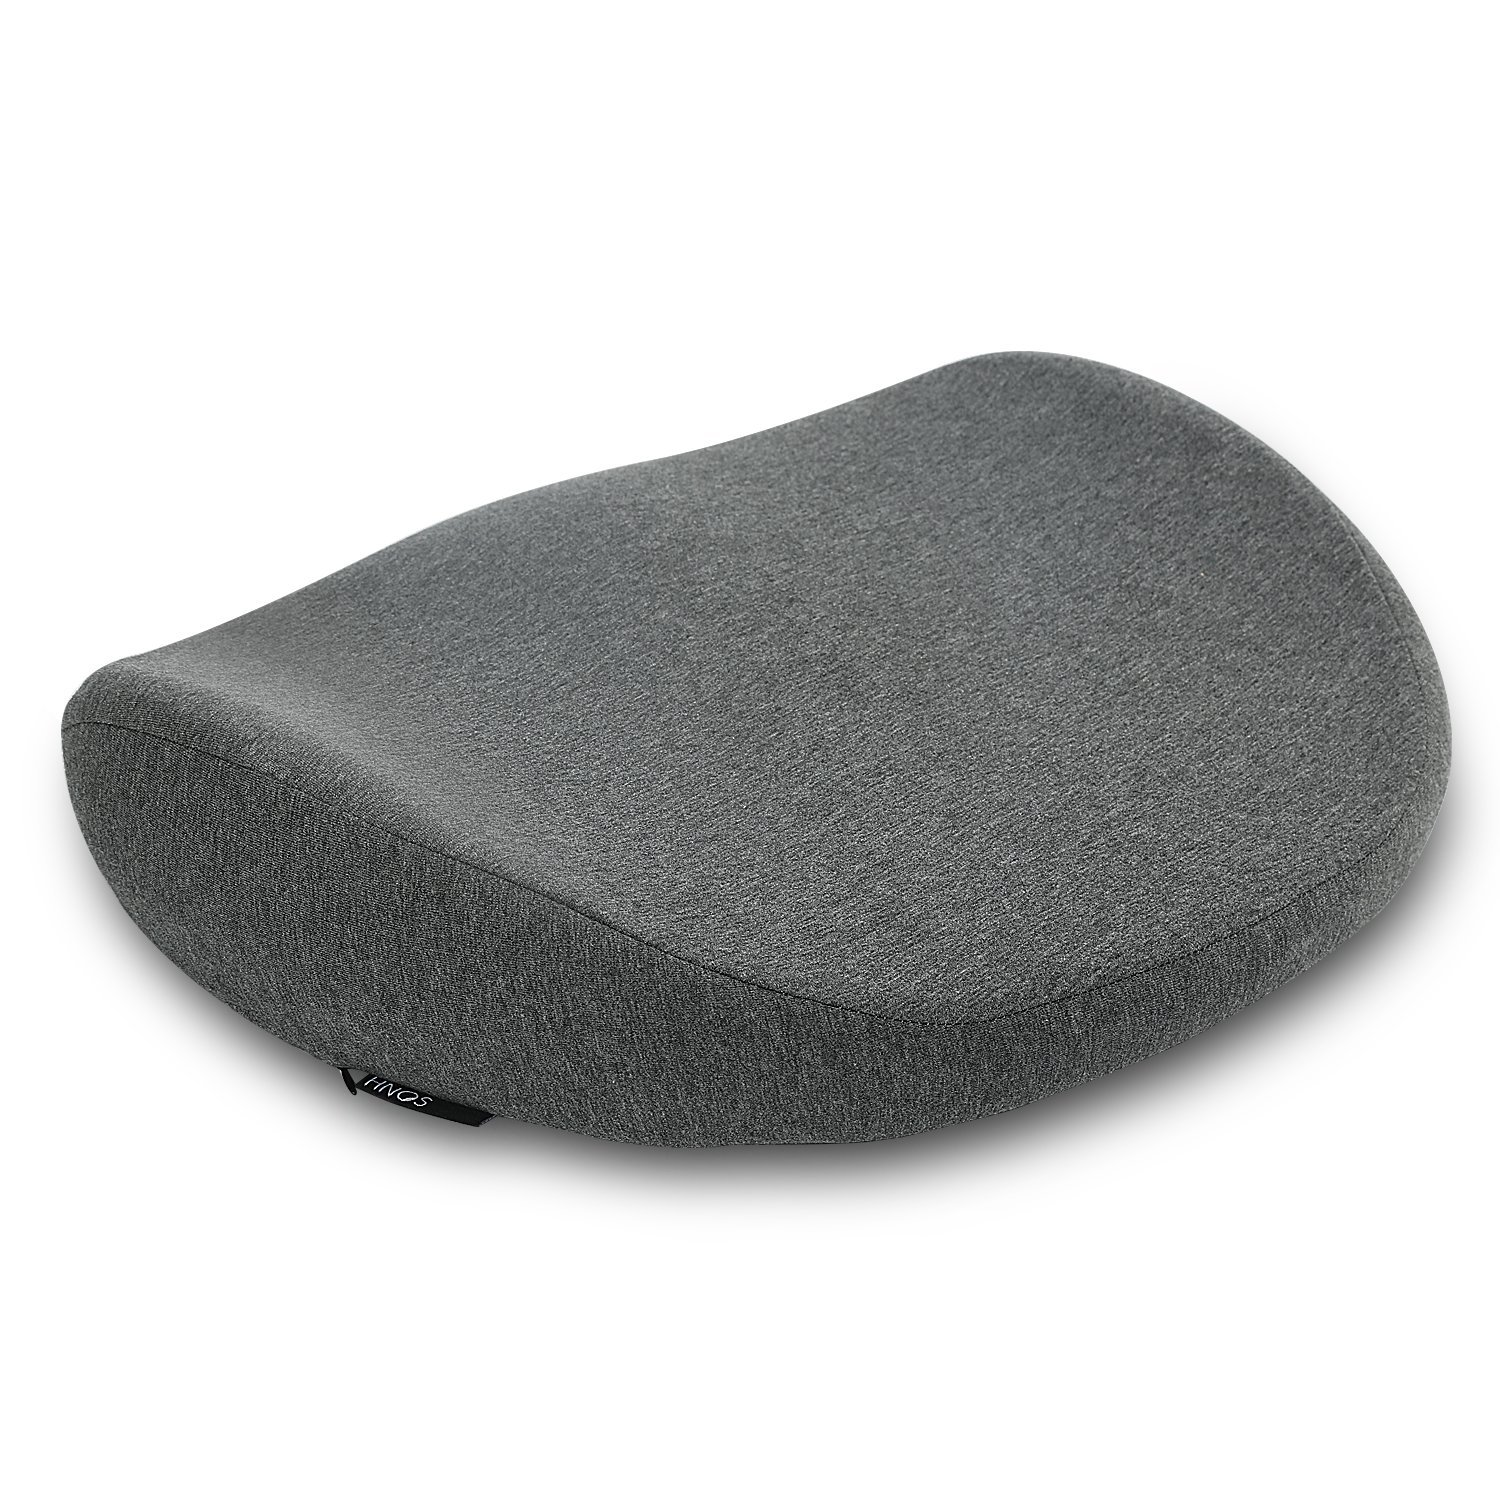 Hnos Comfort Seat Cushion, Memory Foam Coccyx Cushion Orthopedic Design To Relieve Back, Sciatica, Coccyx and Tailbone Pain, Perfect for Your Office Chair, Car Seat, Sitting on Floor